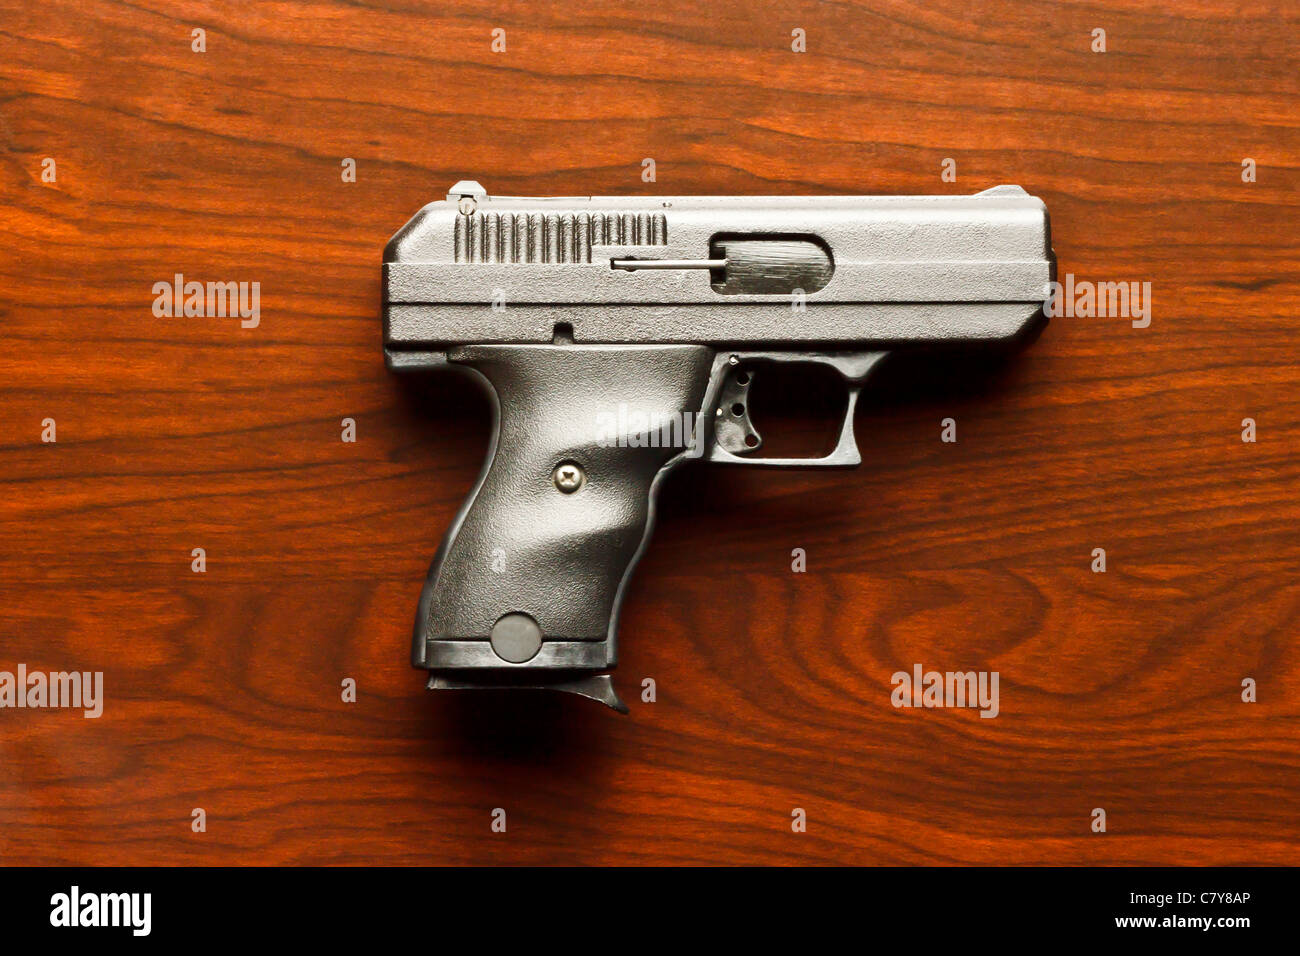 Top view of 9 mm handgun against wooden surface - Stock Image